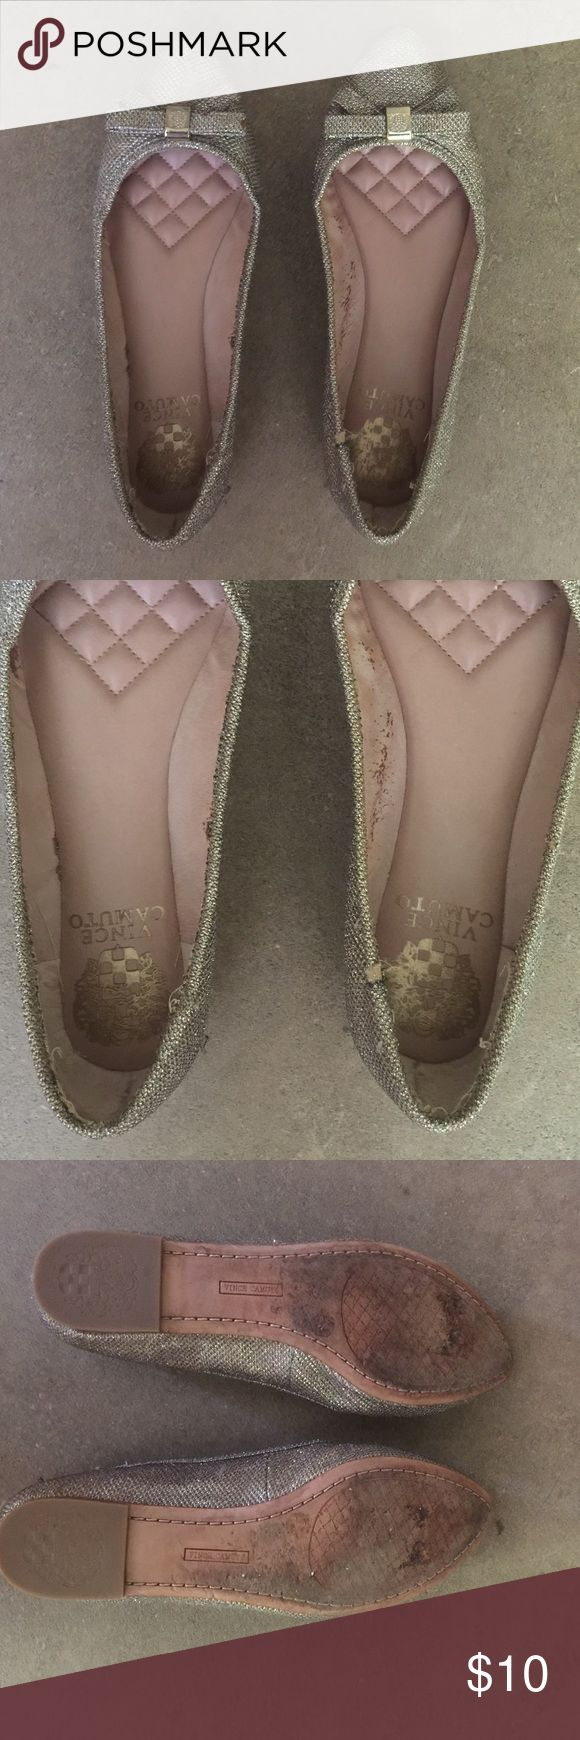 Vince Camuto flats size 7 Vince Camuto flats size 7. I purchased these at Dillards and they were the display pair. These have been worn and there are signs of wear as shown in the picture. I don't wear these anymore and they are just taking up space. Please make me an offer! Vince Camuto Shoes Flats & Loafers